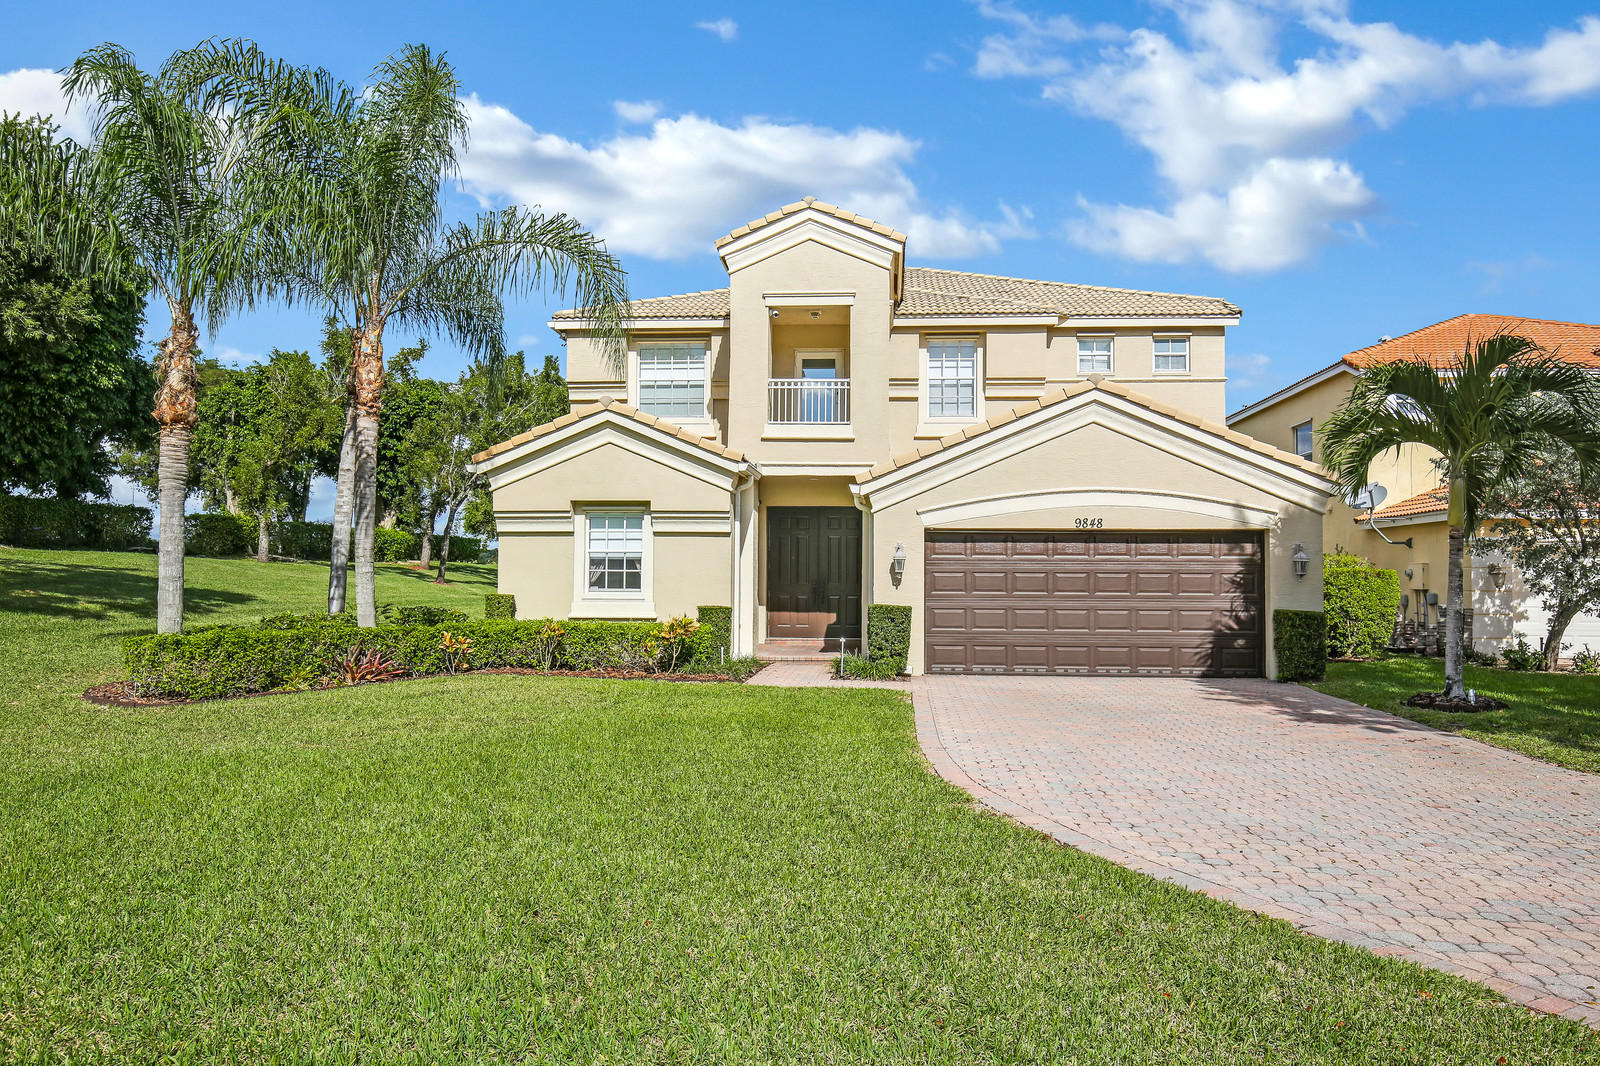 9848 Stover Way, Wellington, Florida 33414, 6 Bedrooms Bedrooms, ,3.1 BathroomsBathrooms,Single Family,For Sale,Shaughnessy,Stover,RX-10487689